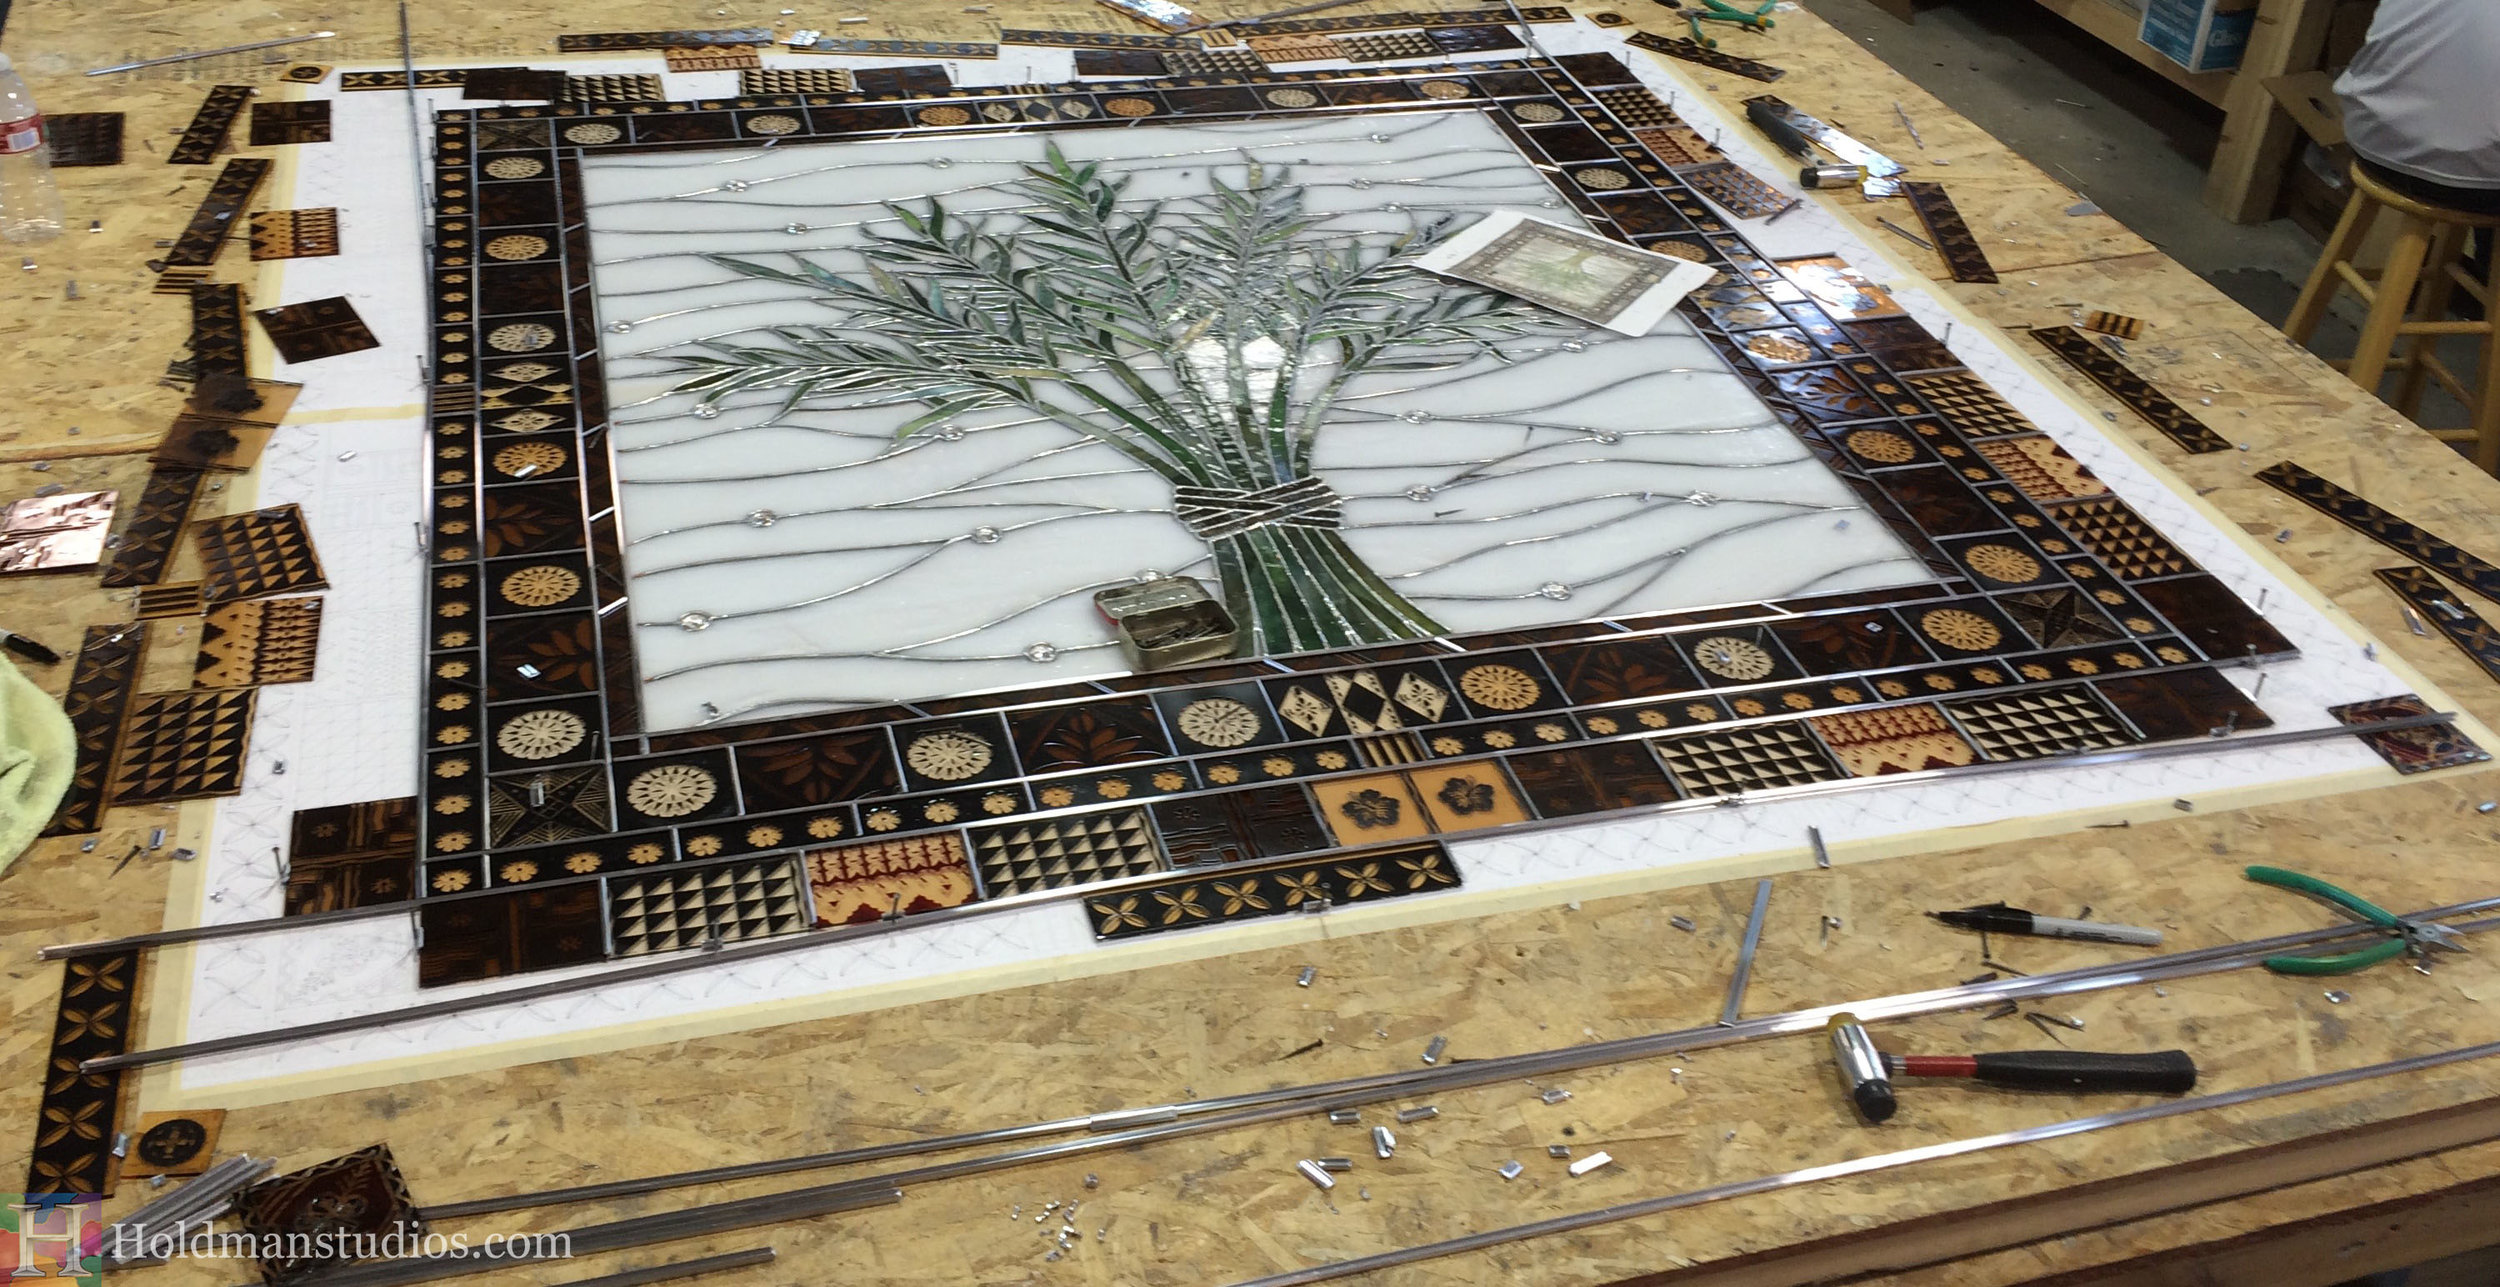 Holdman-Studios-Stained-Etched-Glass-Window-Harvest-Branches-Palm-Leaves-With-Border-Working.jpg